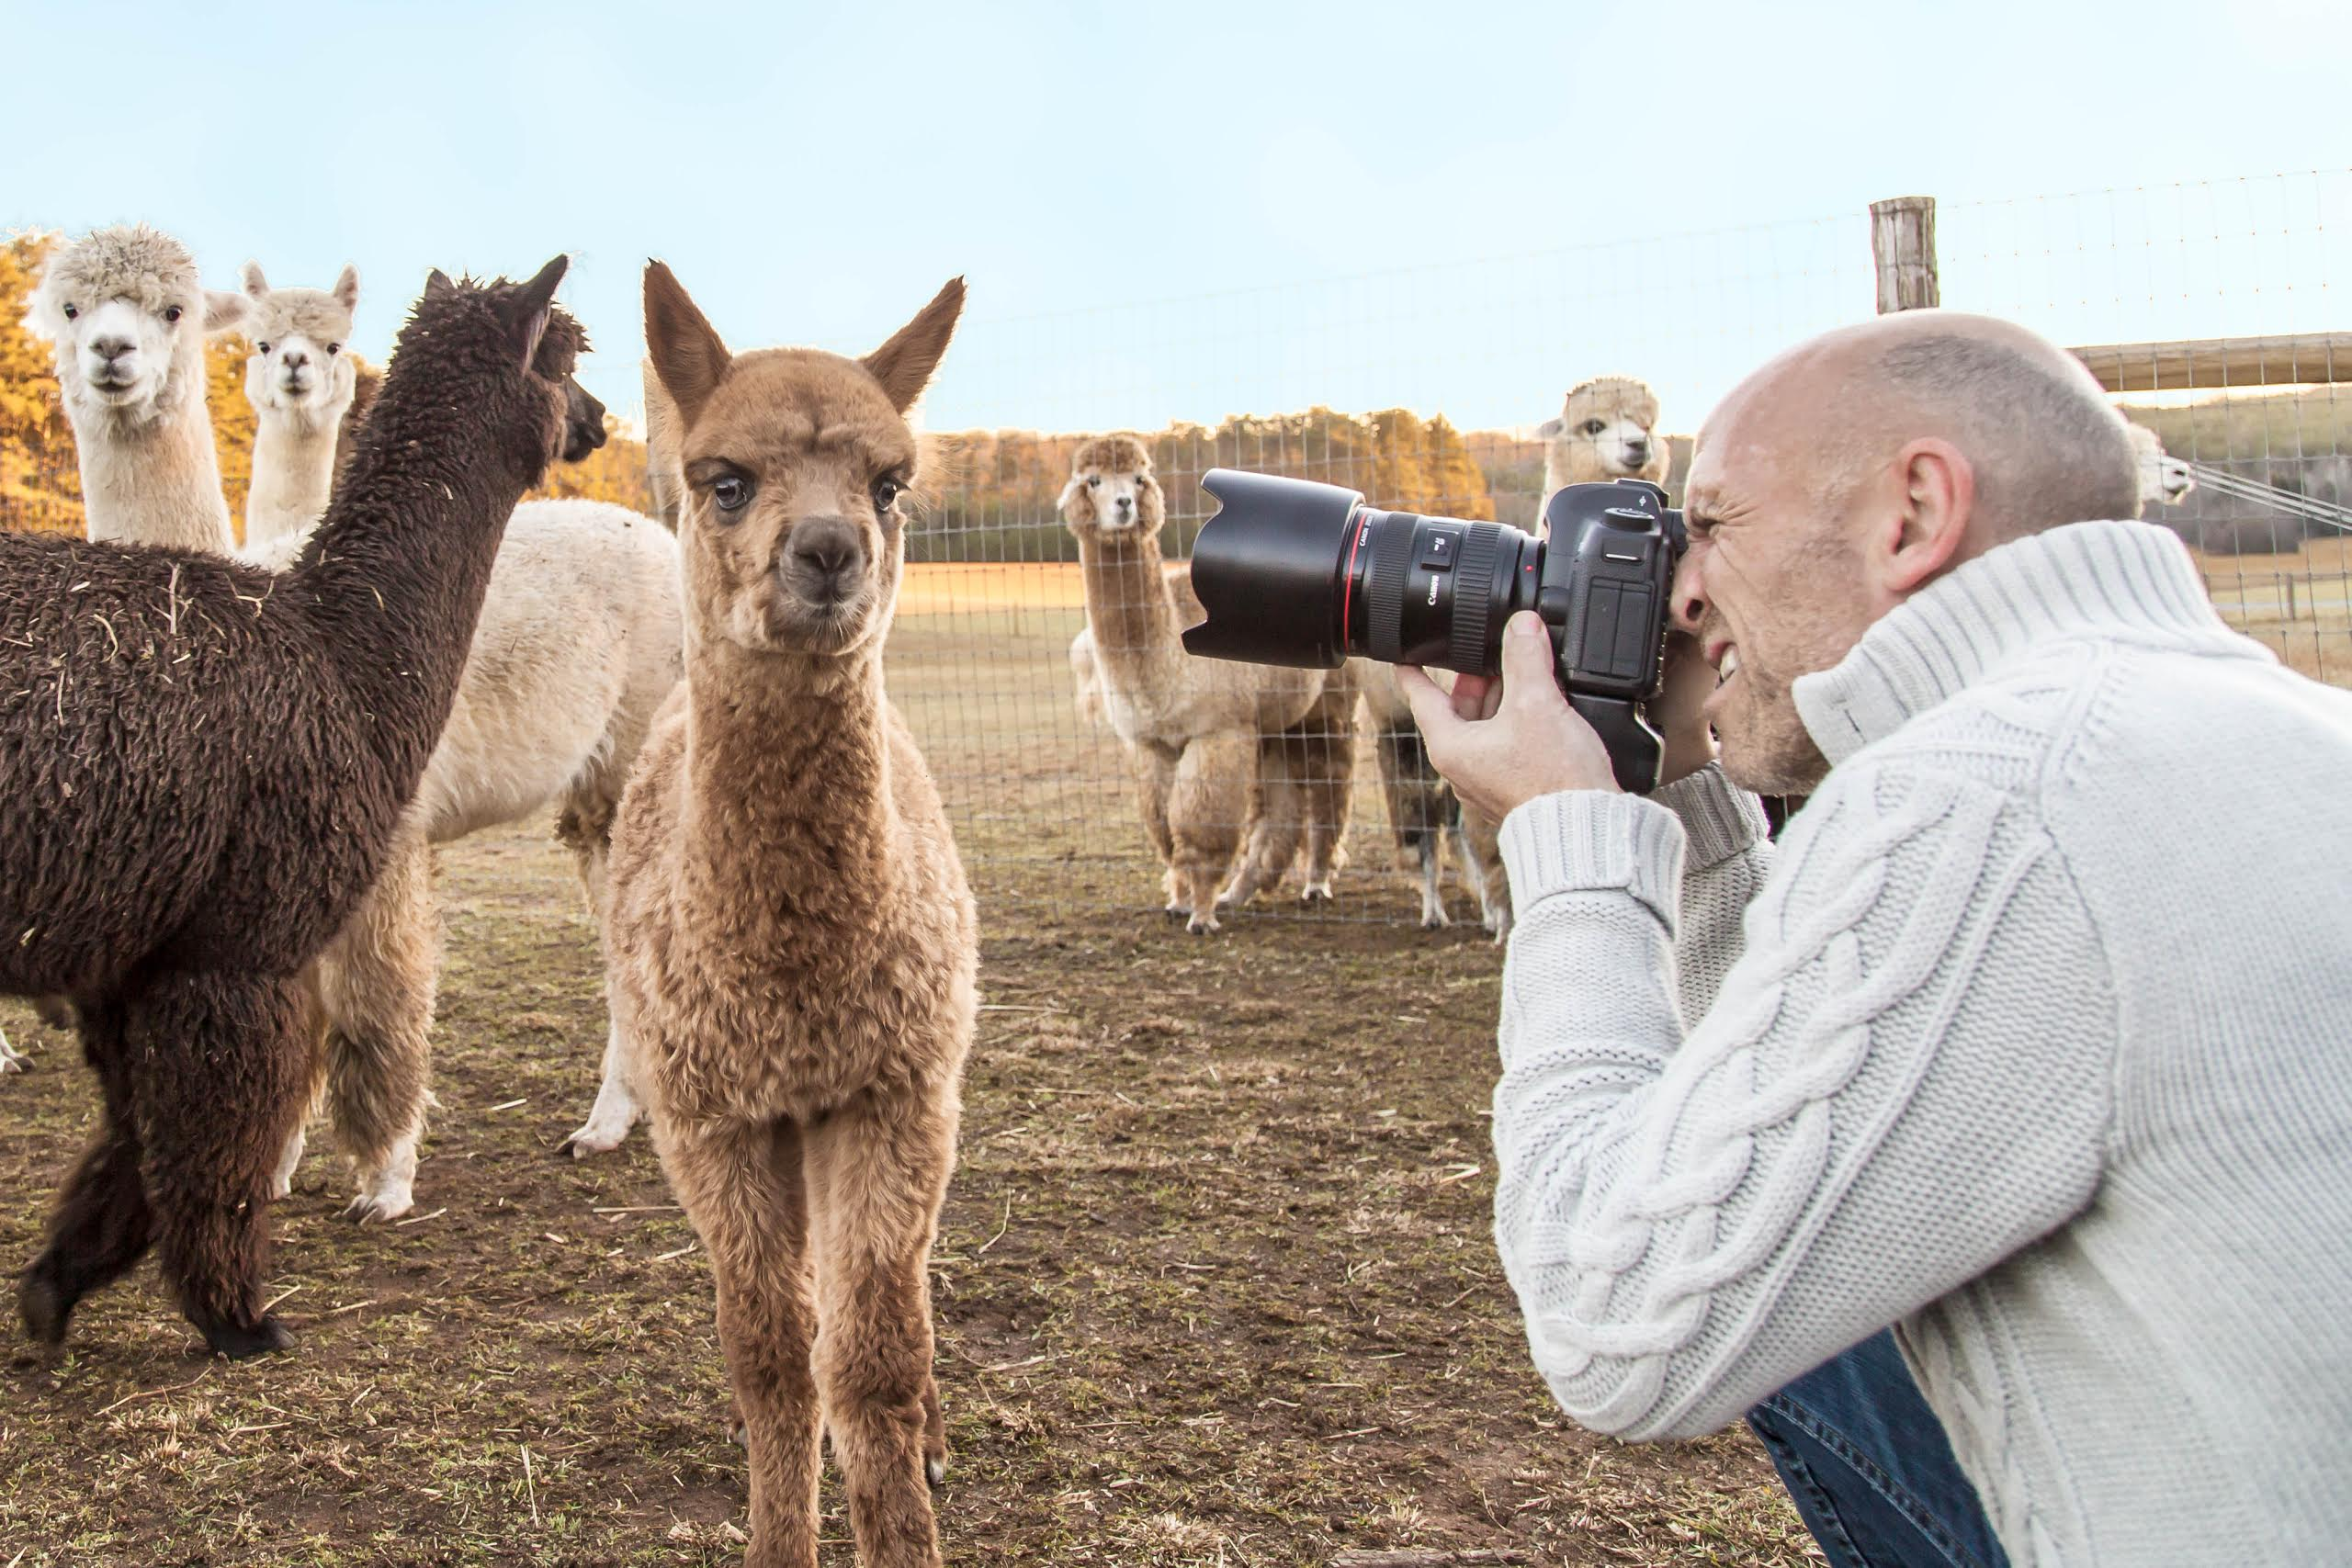 Photographing a young cria